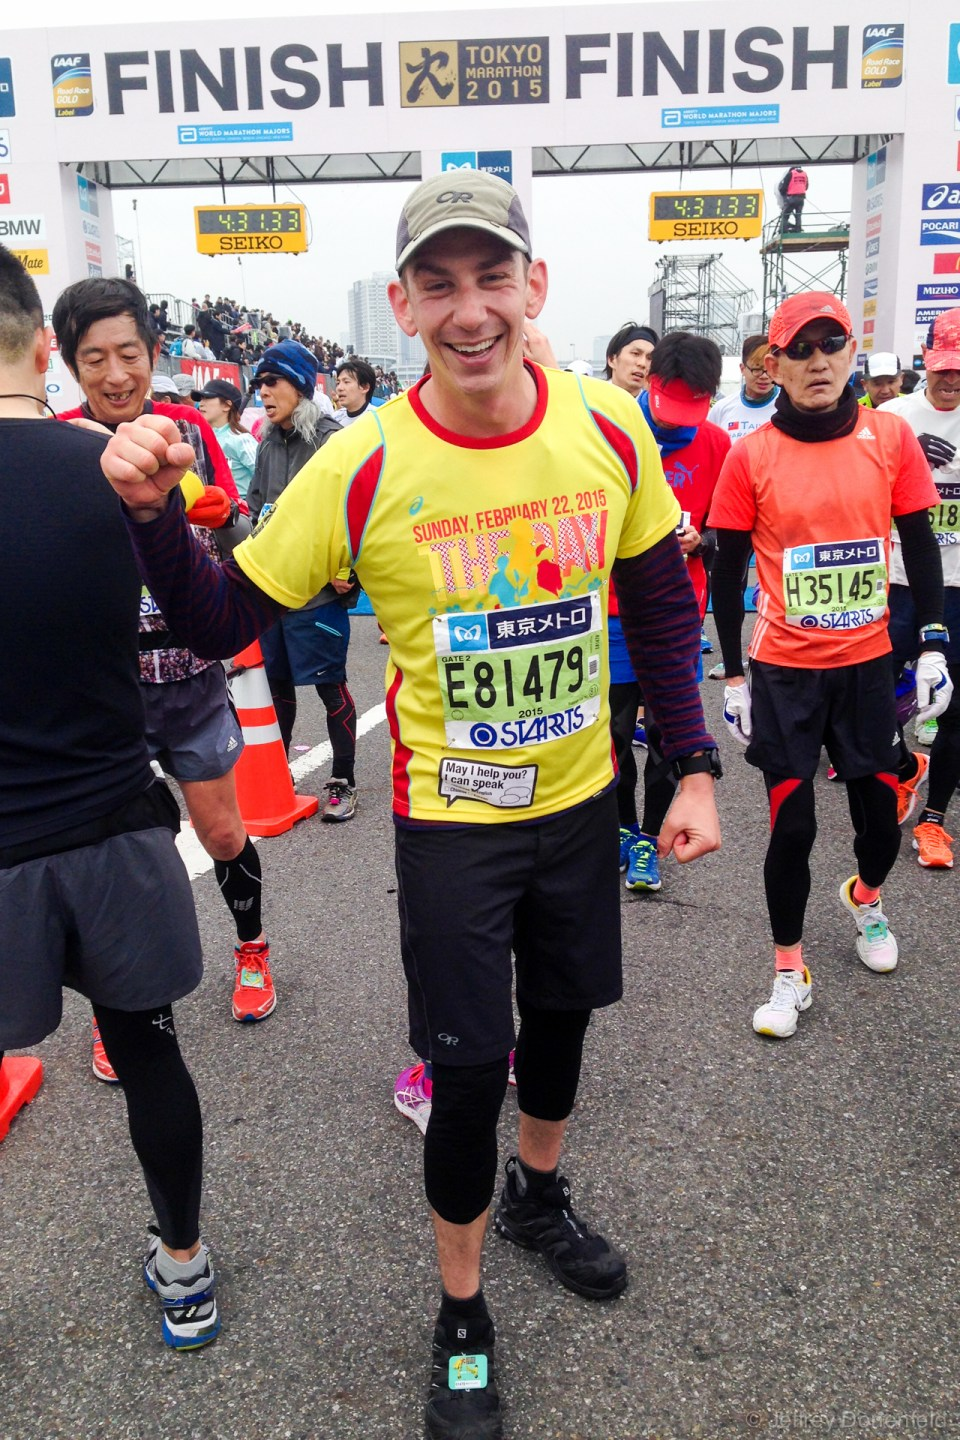 I finished in 4:31. It wasn't my best marathon time, but it felt great to run, and was fun to see lots of neighborhoods of Tokyo.